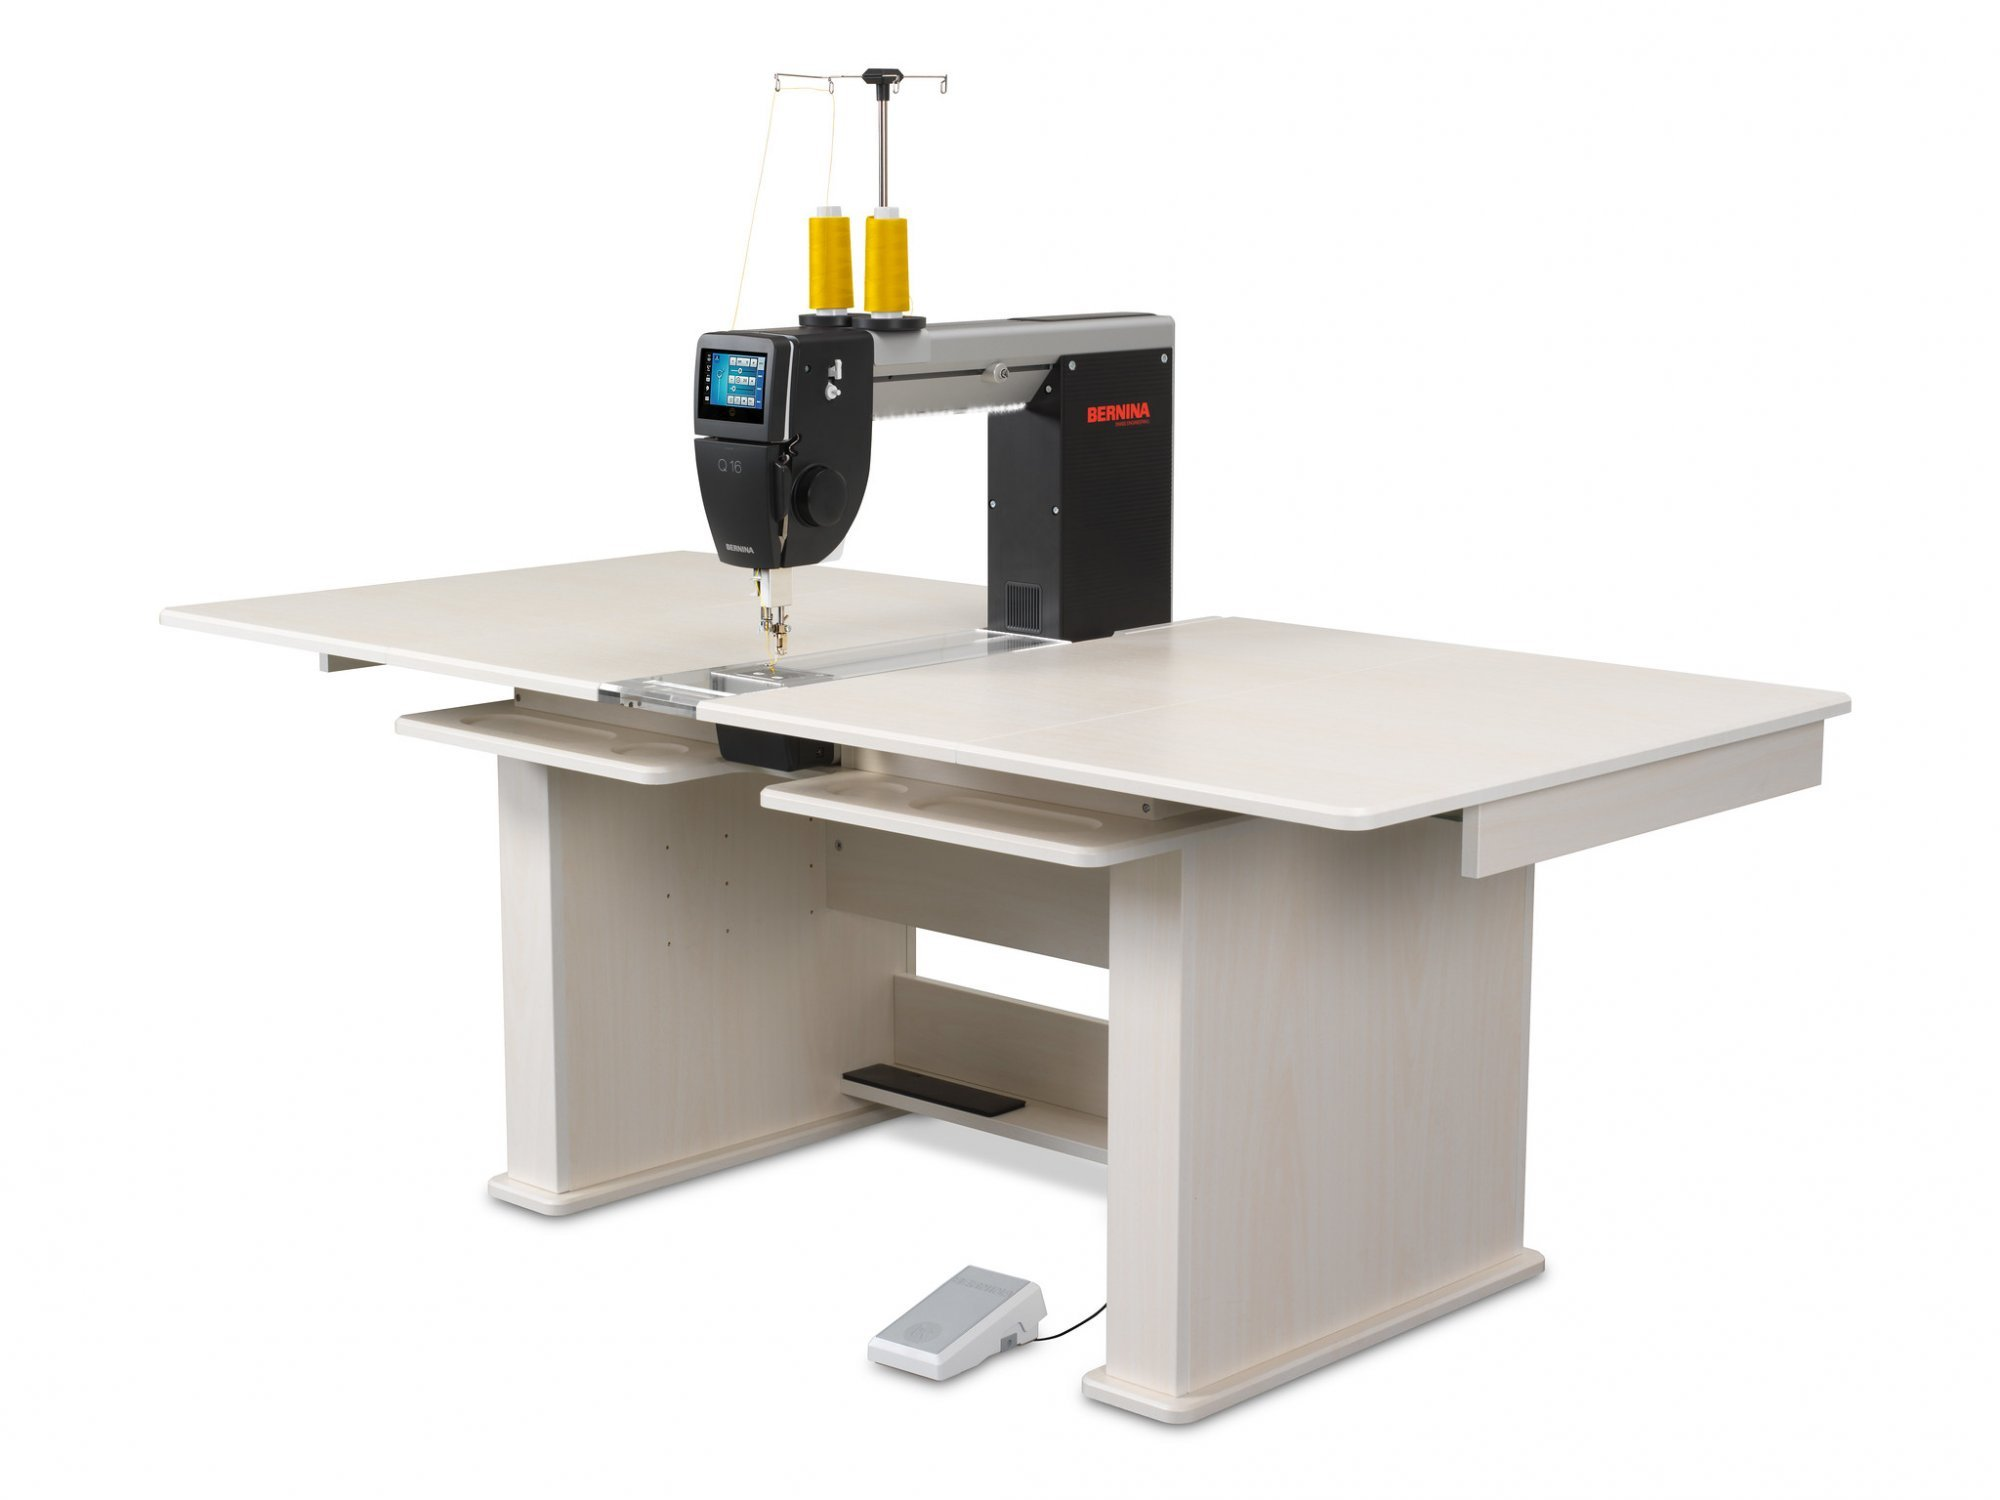 Bernina Q16 Sit Down Sewing Machine with Standard table- White Ash or Golden Teak